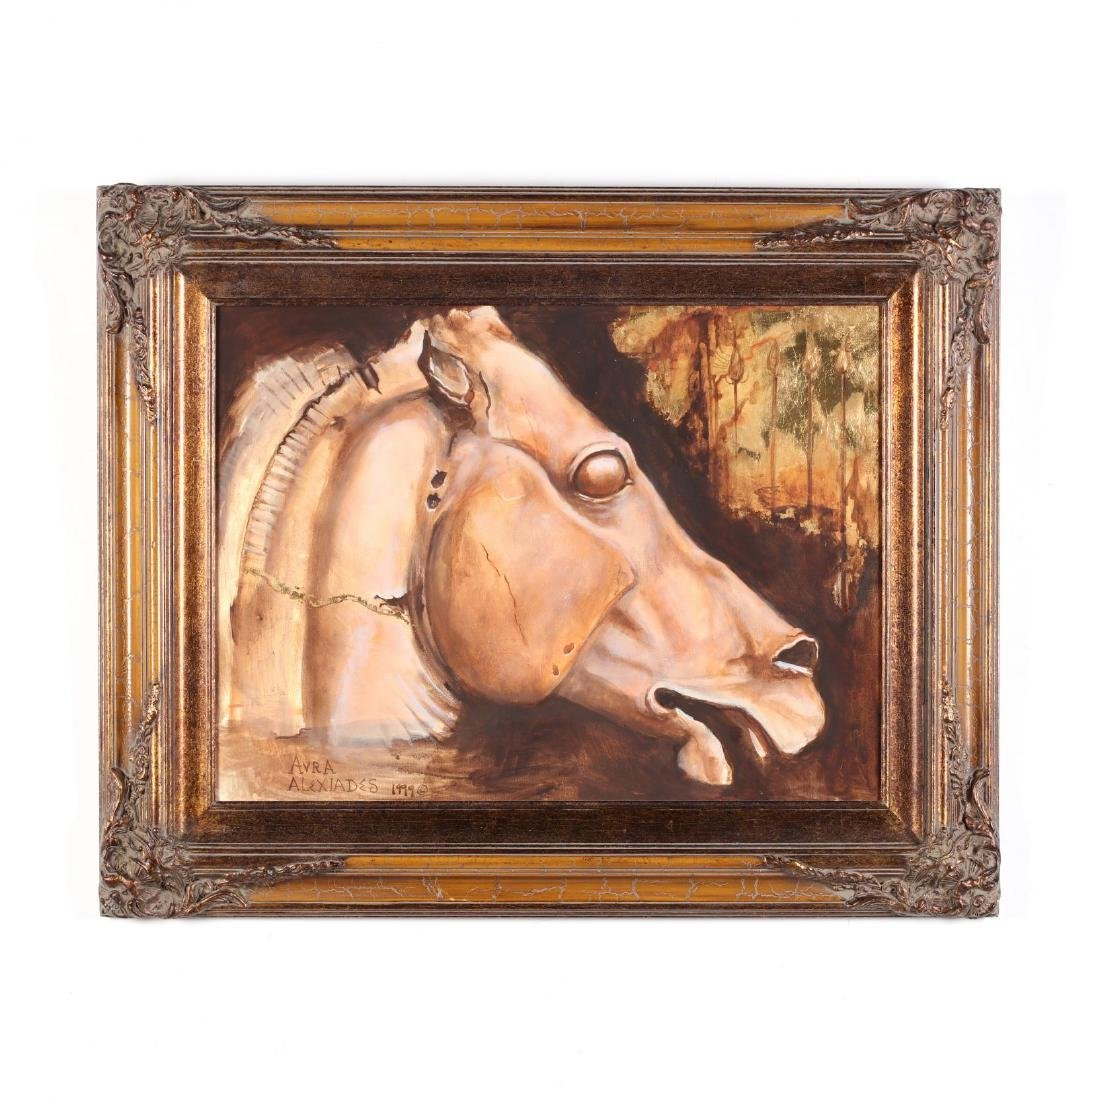 Athenian Horse, Signed by Avra Alexiades